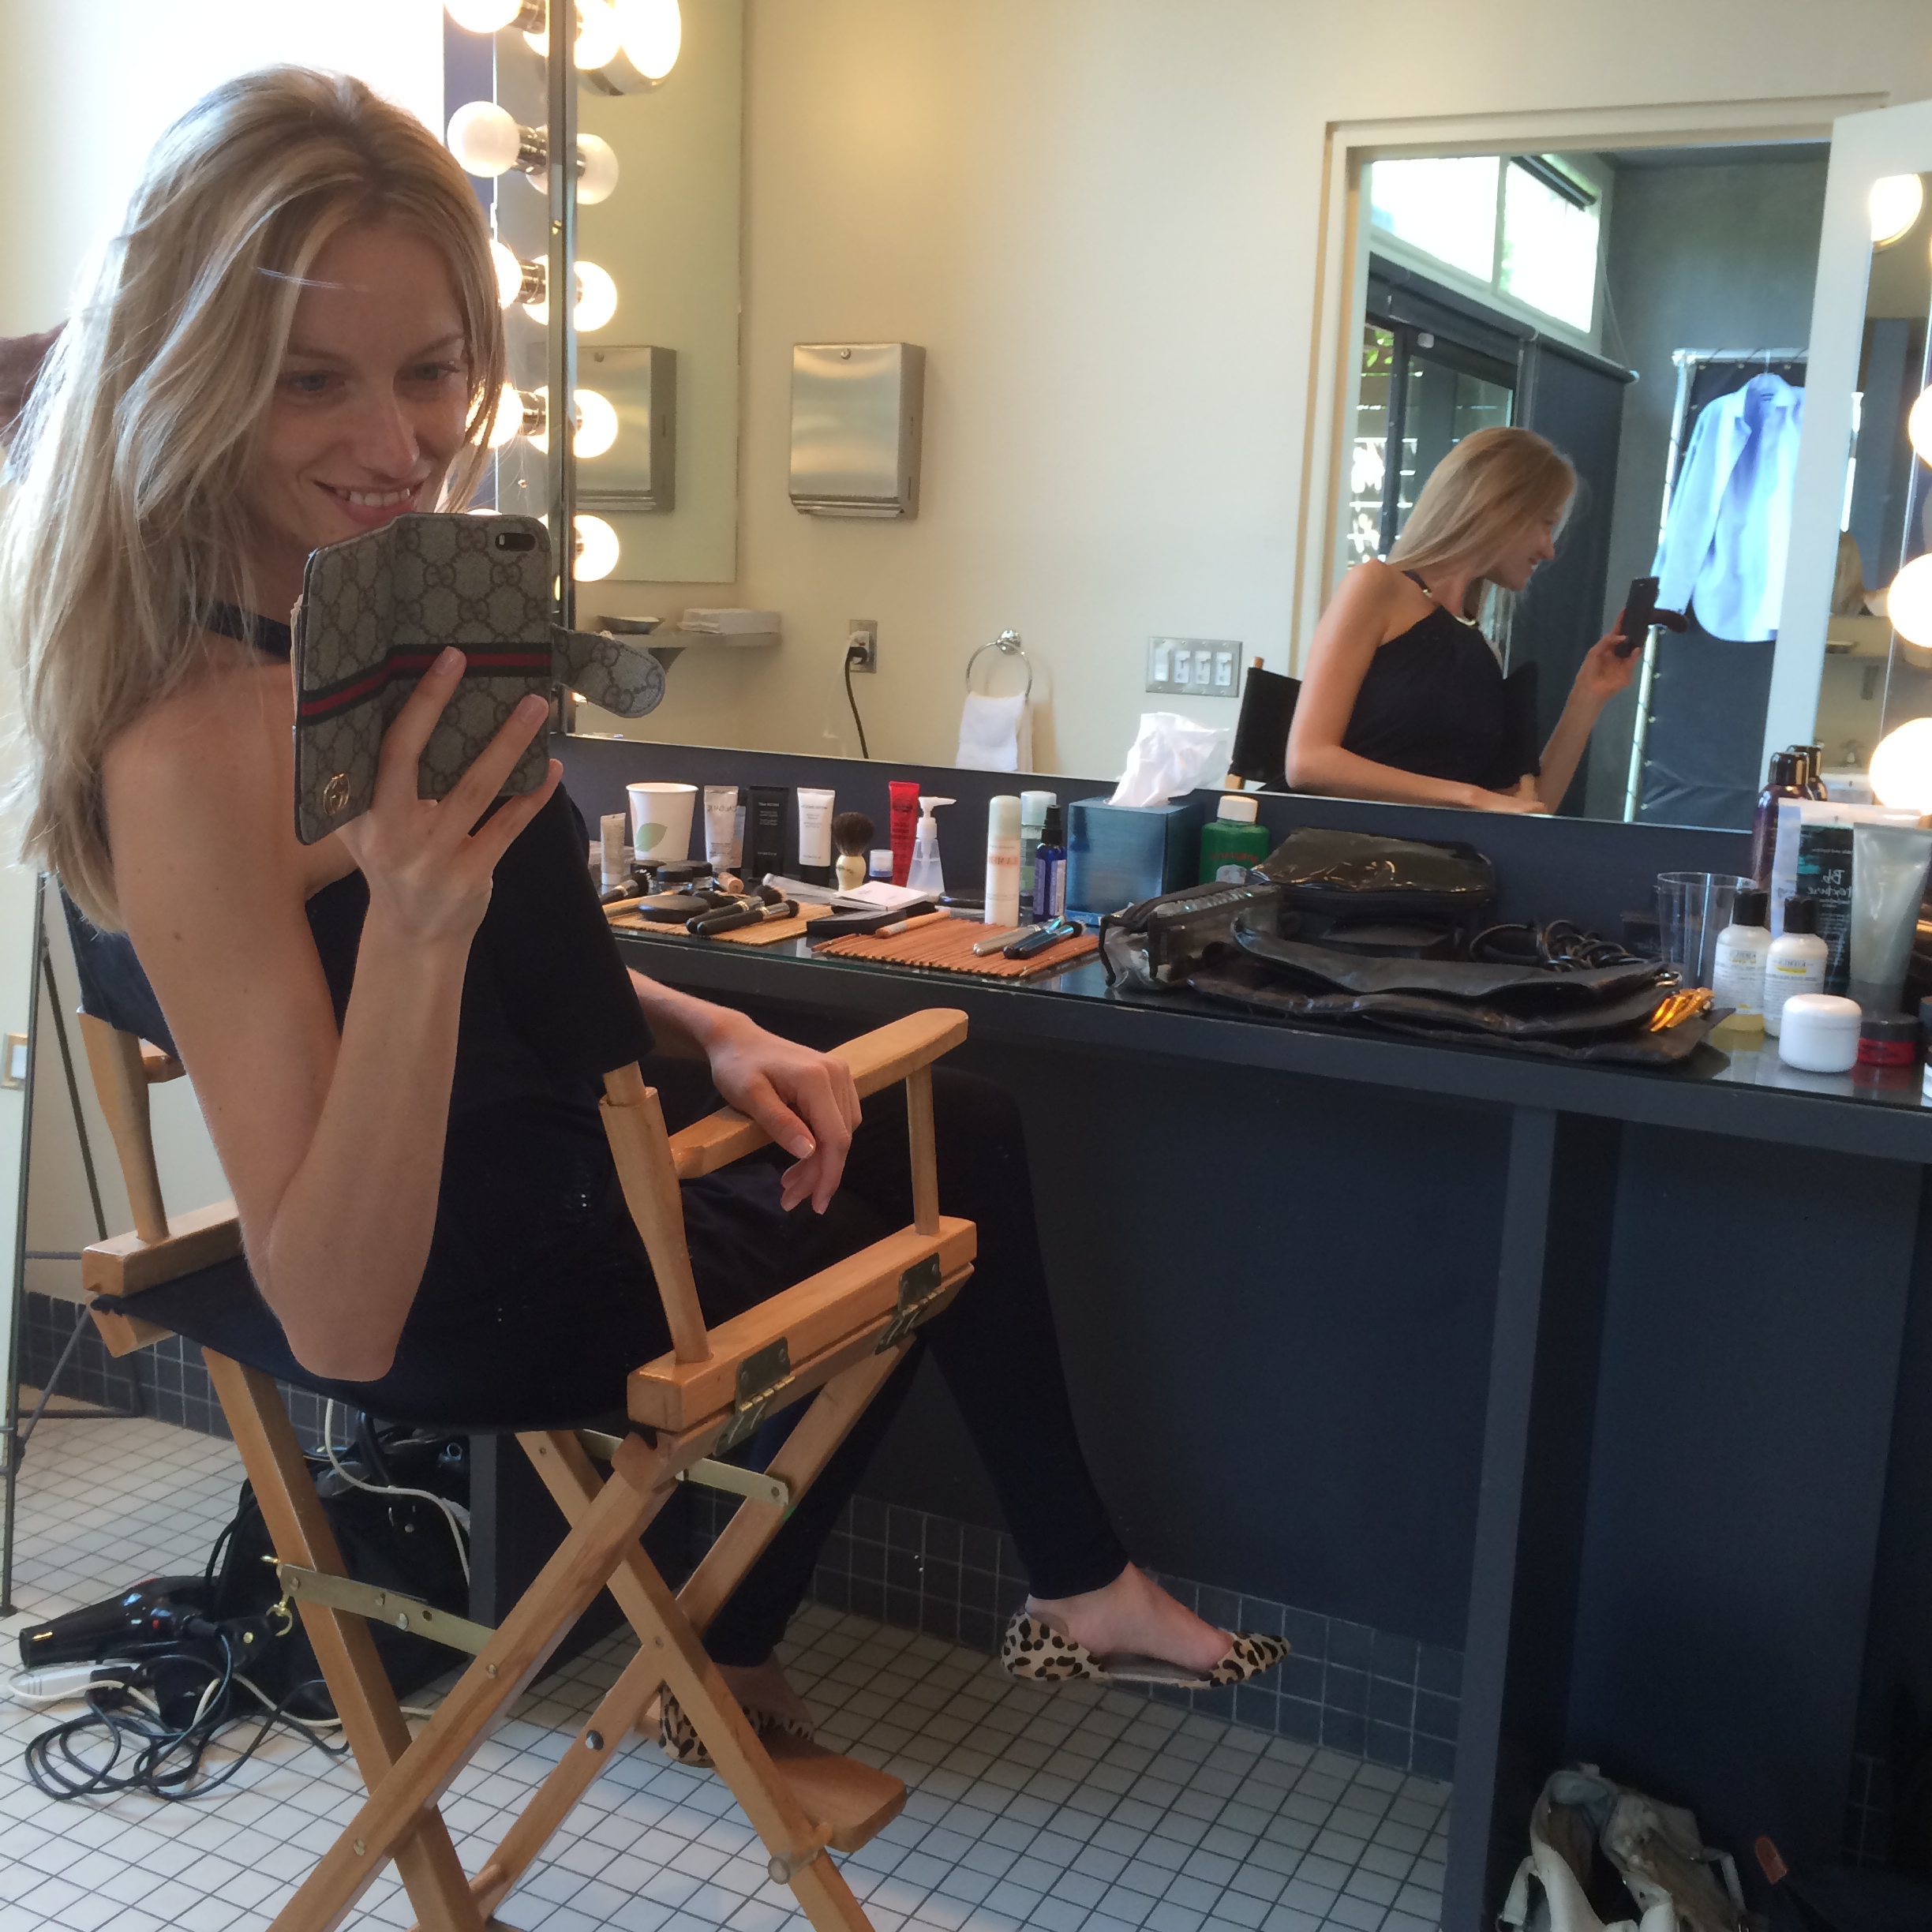 """On set. Pre-MakeUp. Detoxed. No Filter!"""